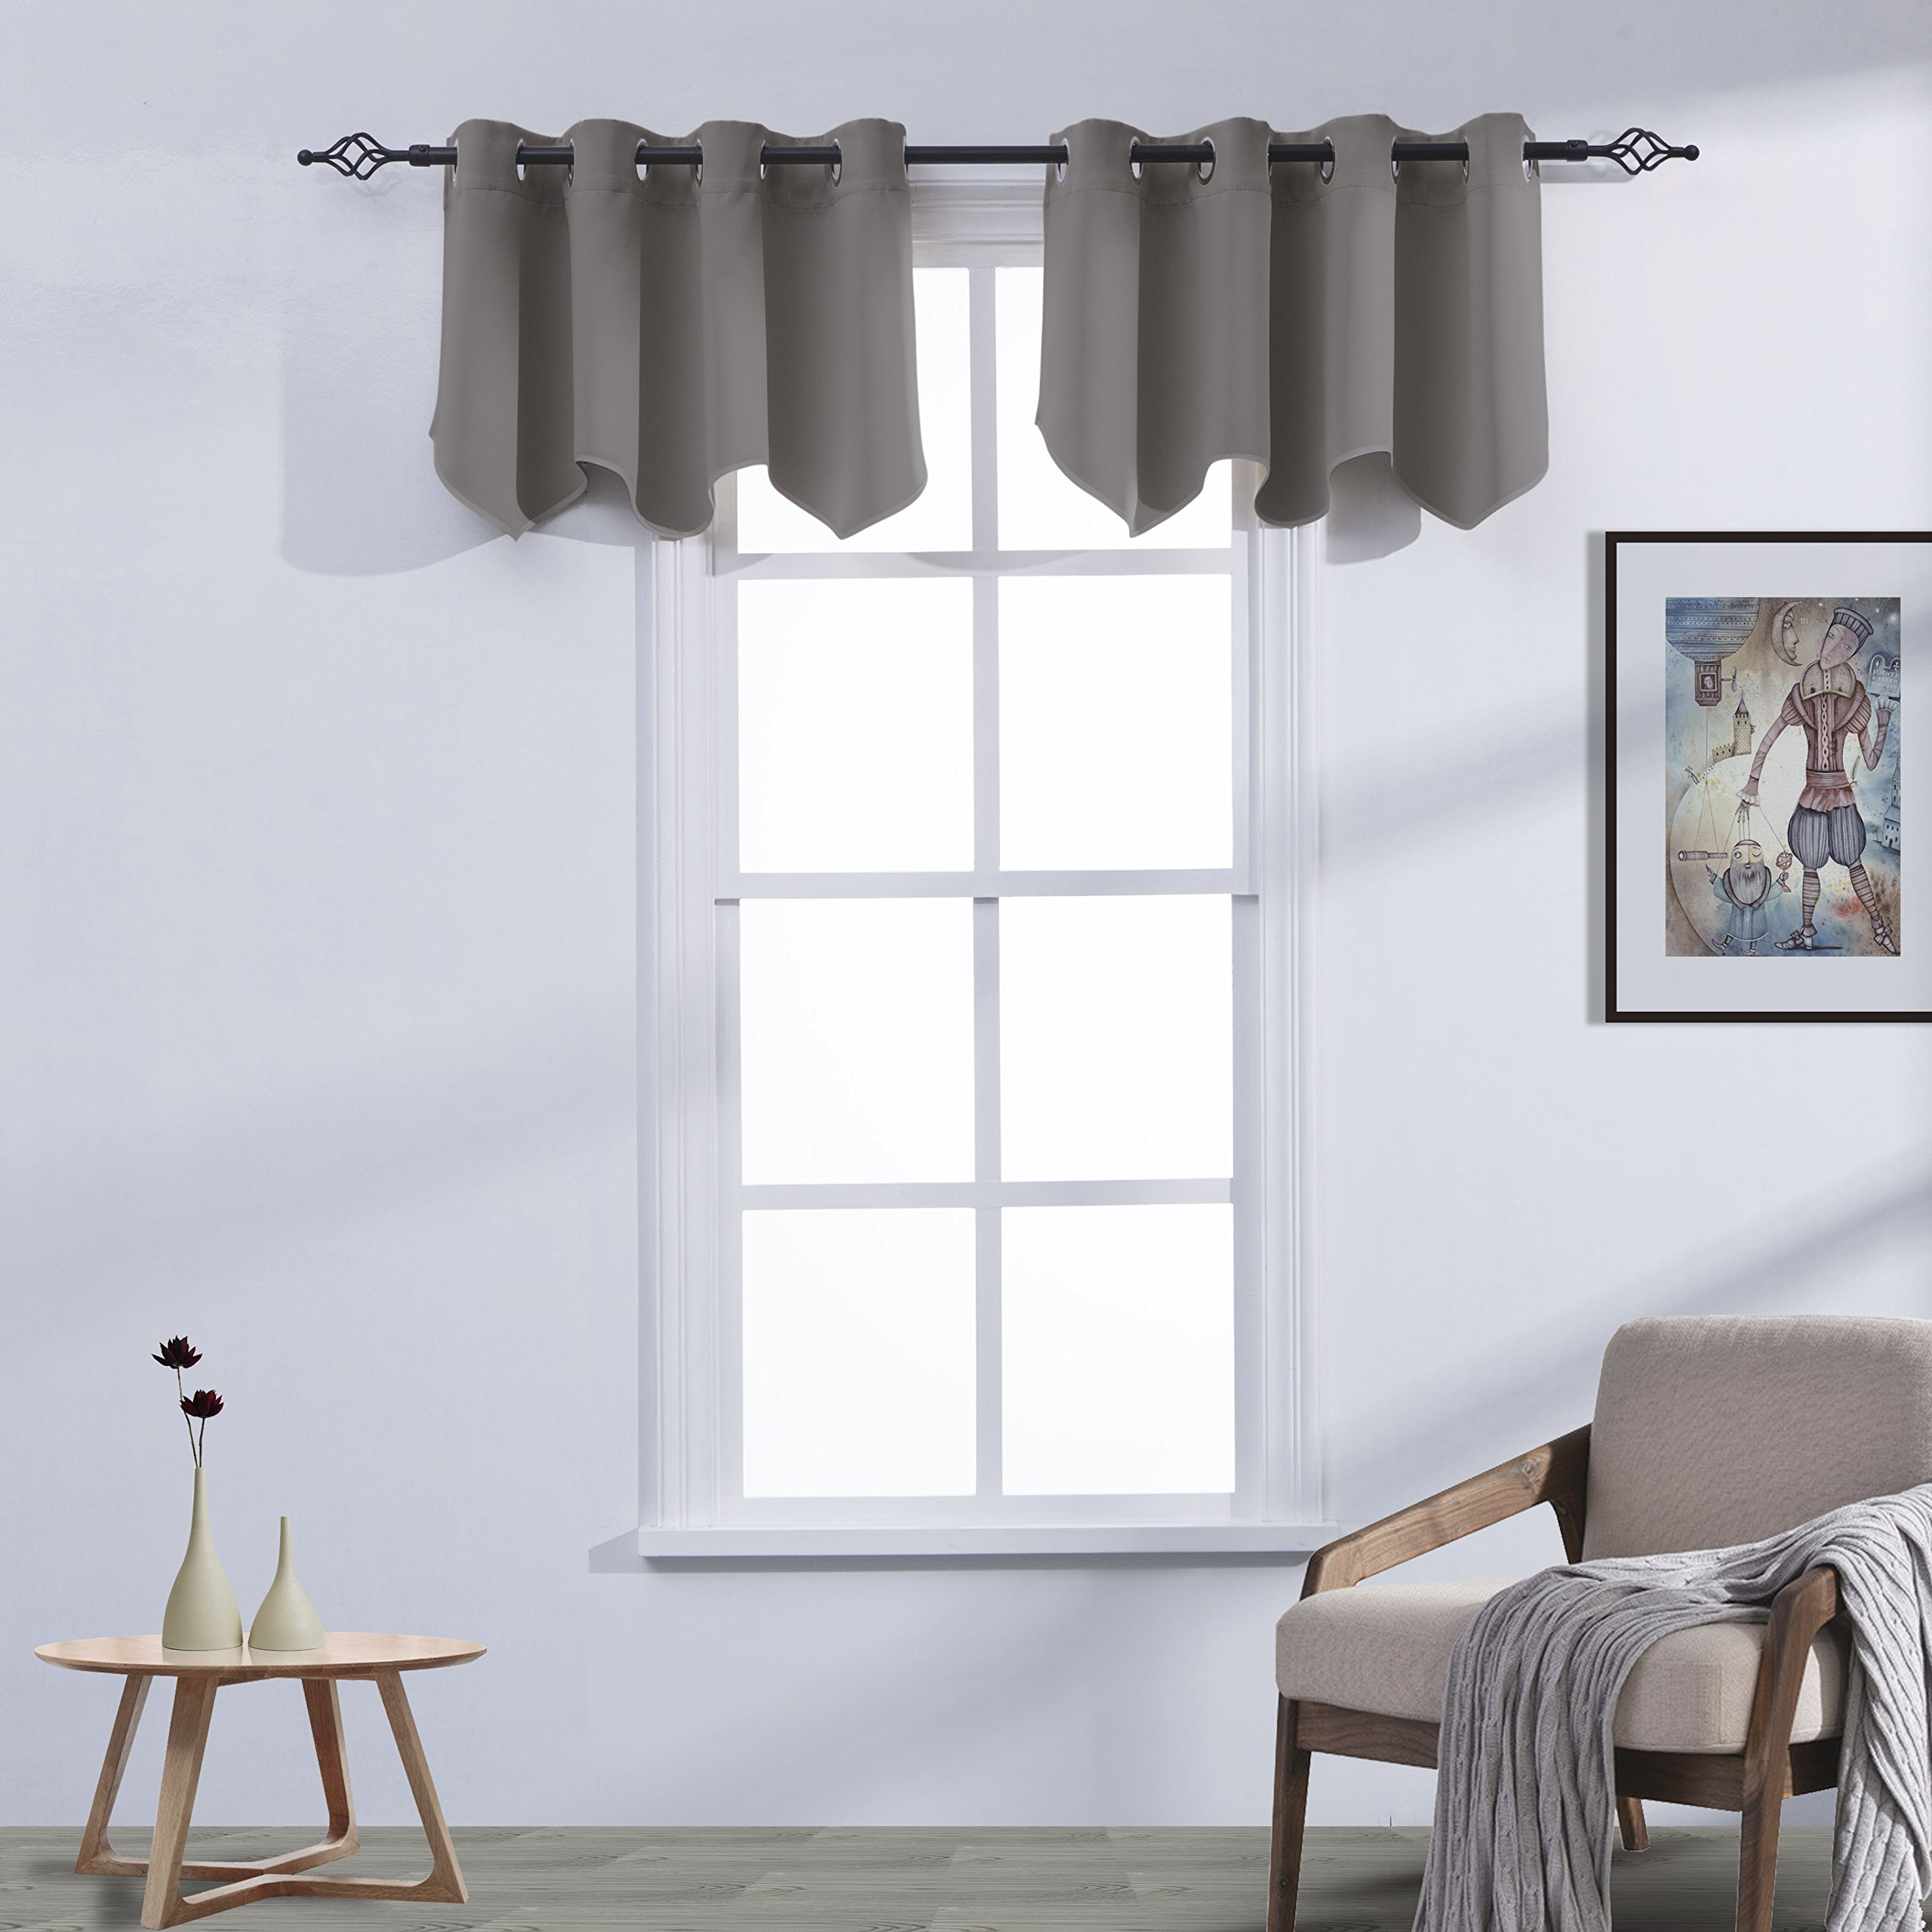 Aquazolax Window Scalloped Valances for Kitchen Thermal Insulated Solid Grommets Top Blackout Curtains Valances, 52 by 18-inch, Grey, 2 Panels